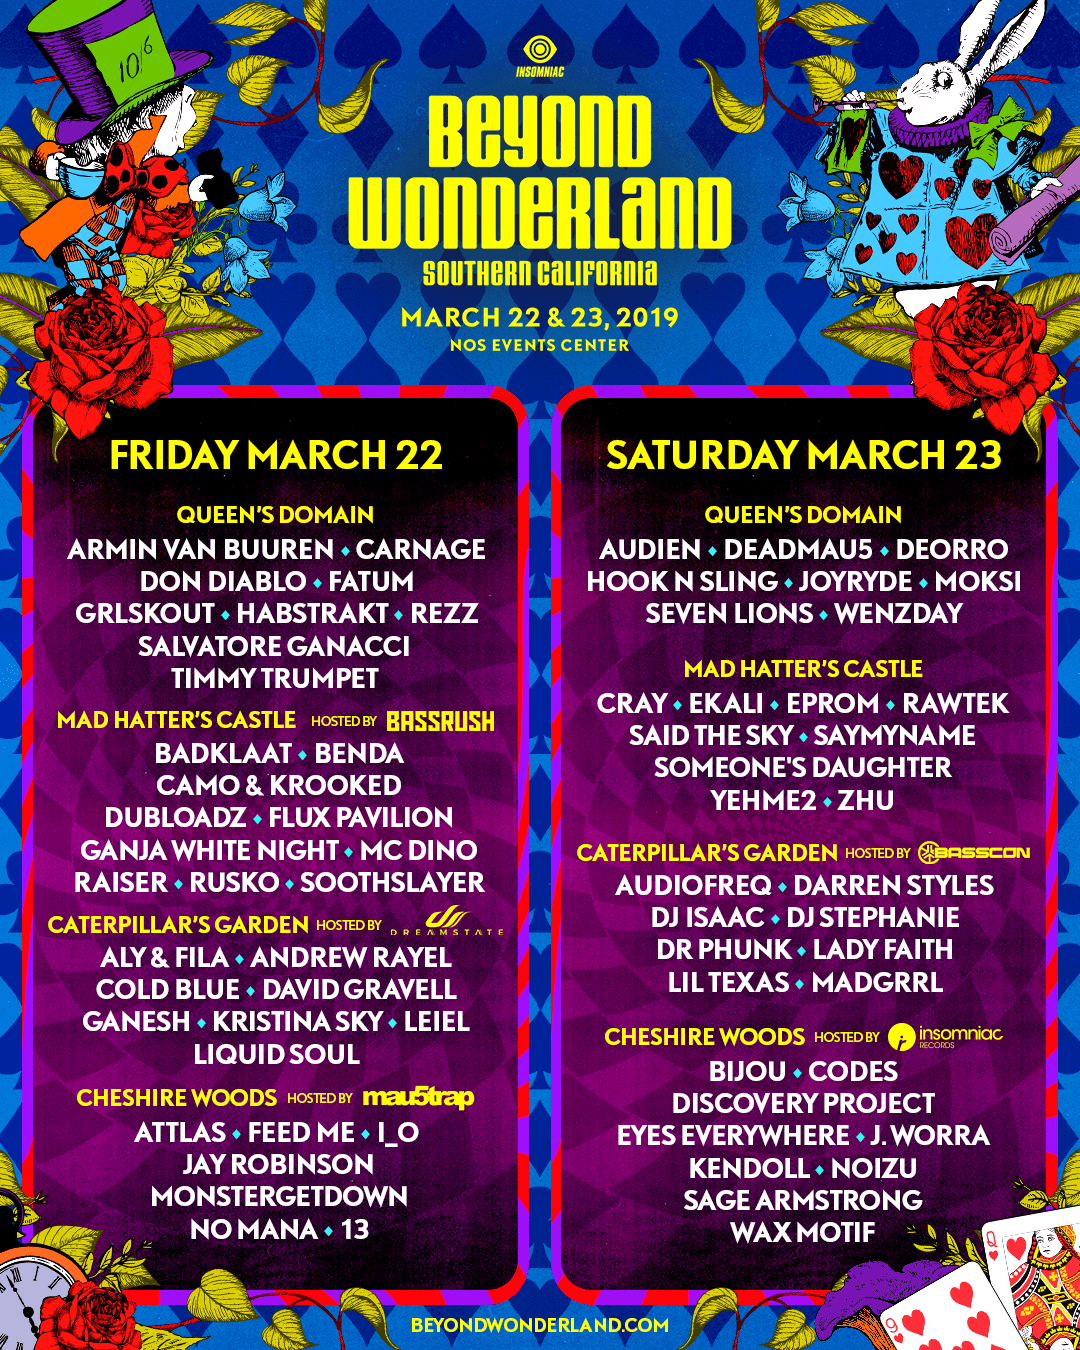 Beyond Wonderland 2019 lineup by day by stage artwrok